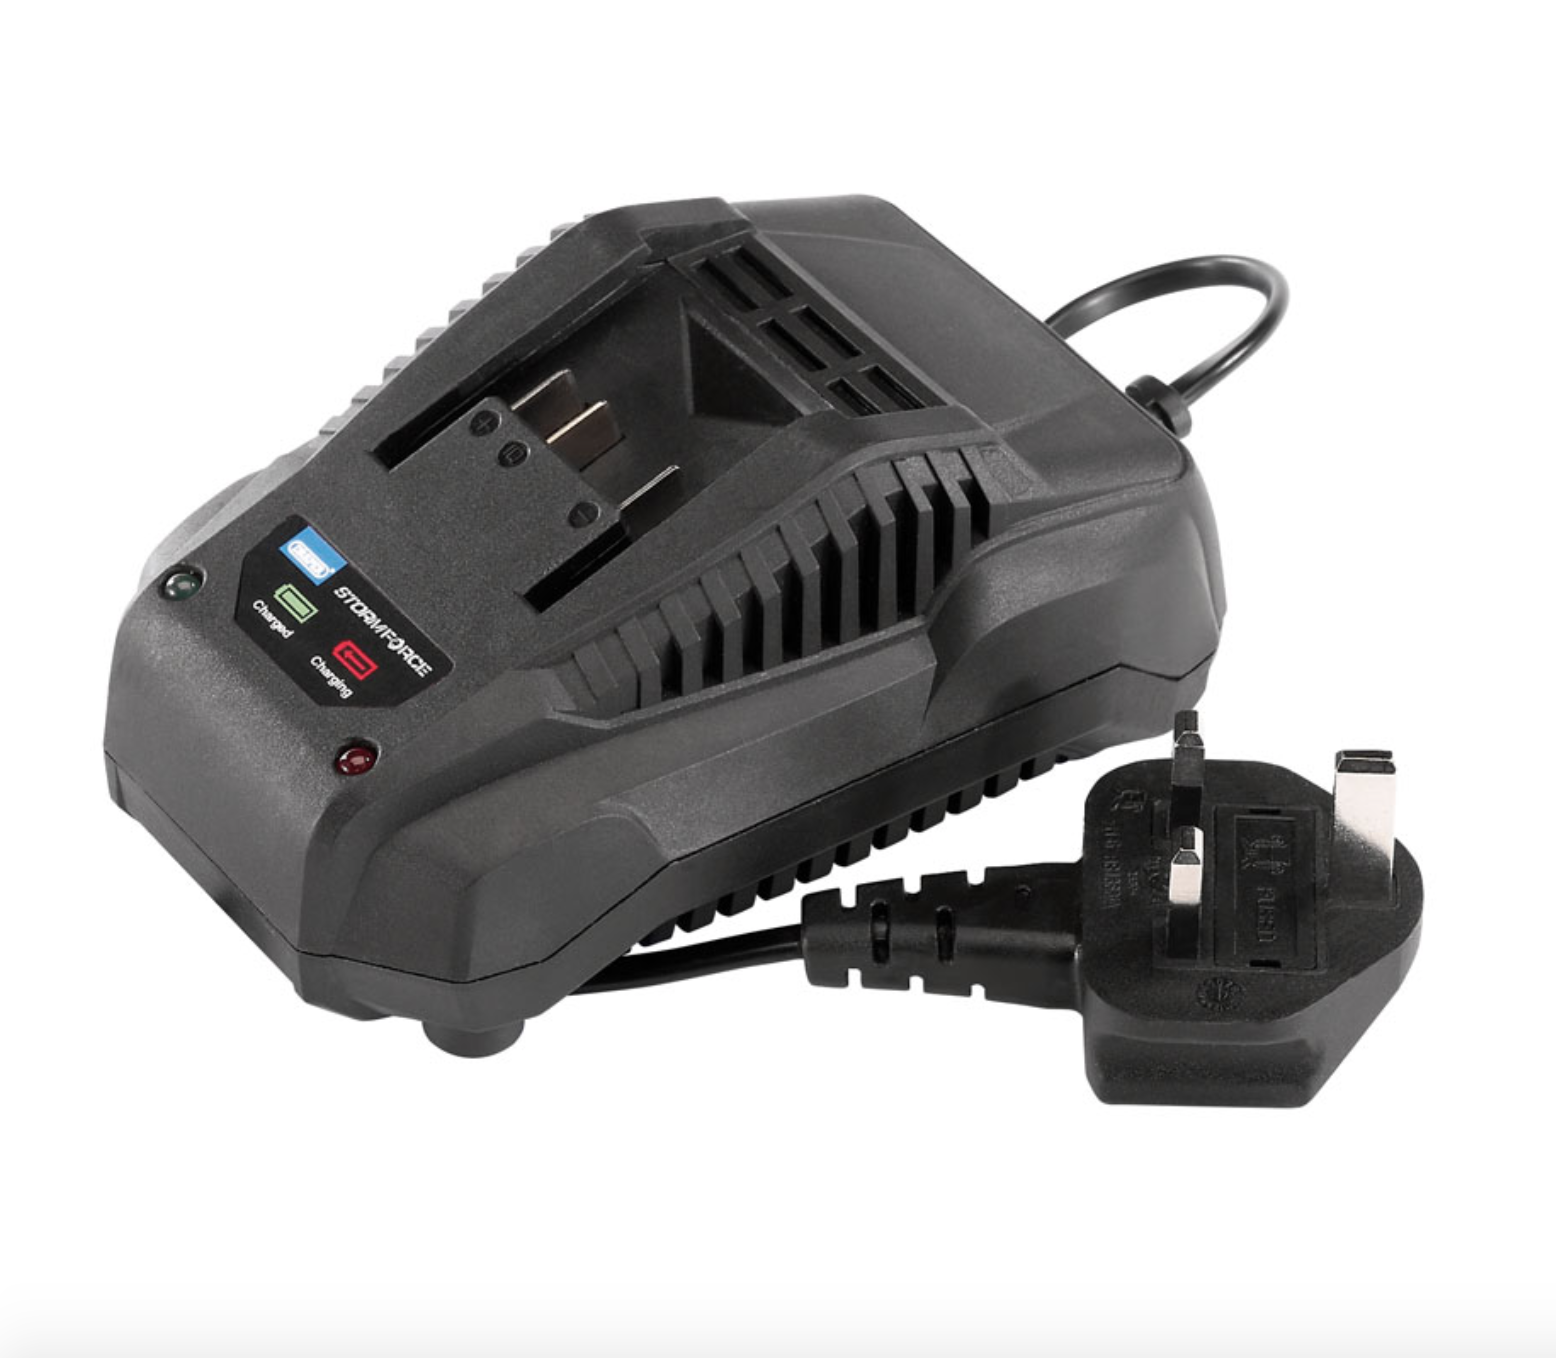 Draper Storm Force 20V Volt SDS Rotary Rotary Rotary - Rotary Hammer Drill 4.0AH Fast Charger 0e6733